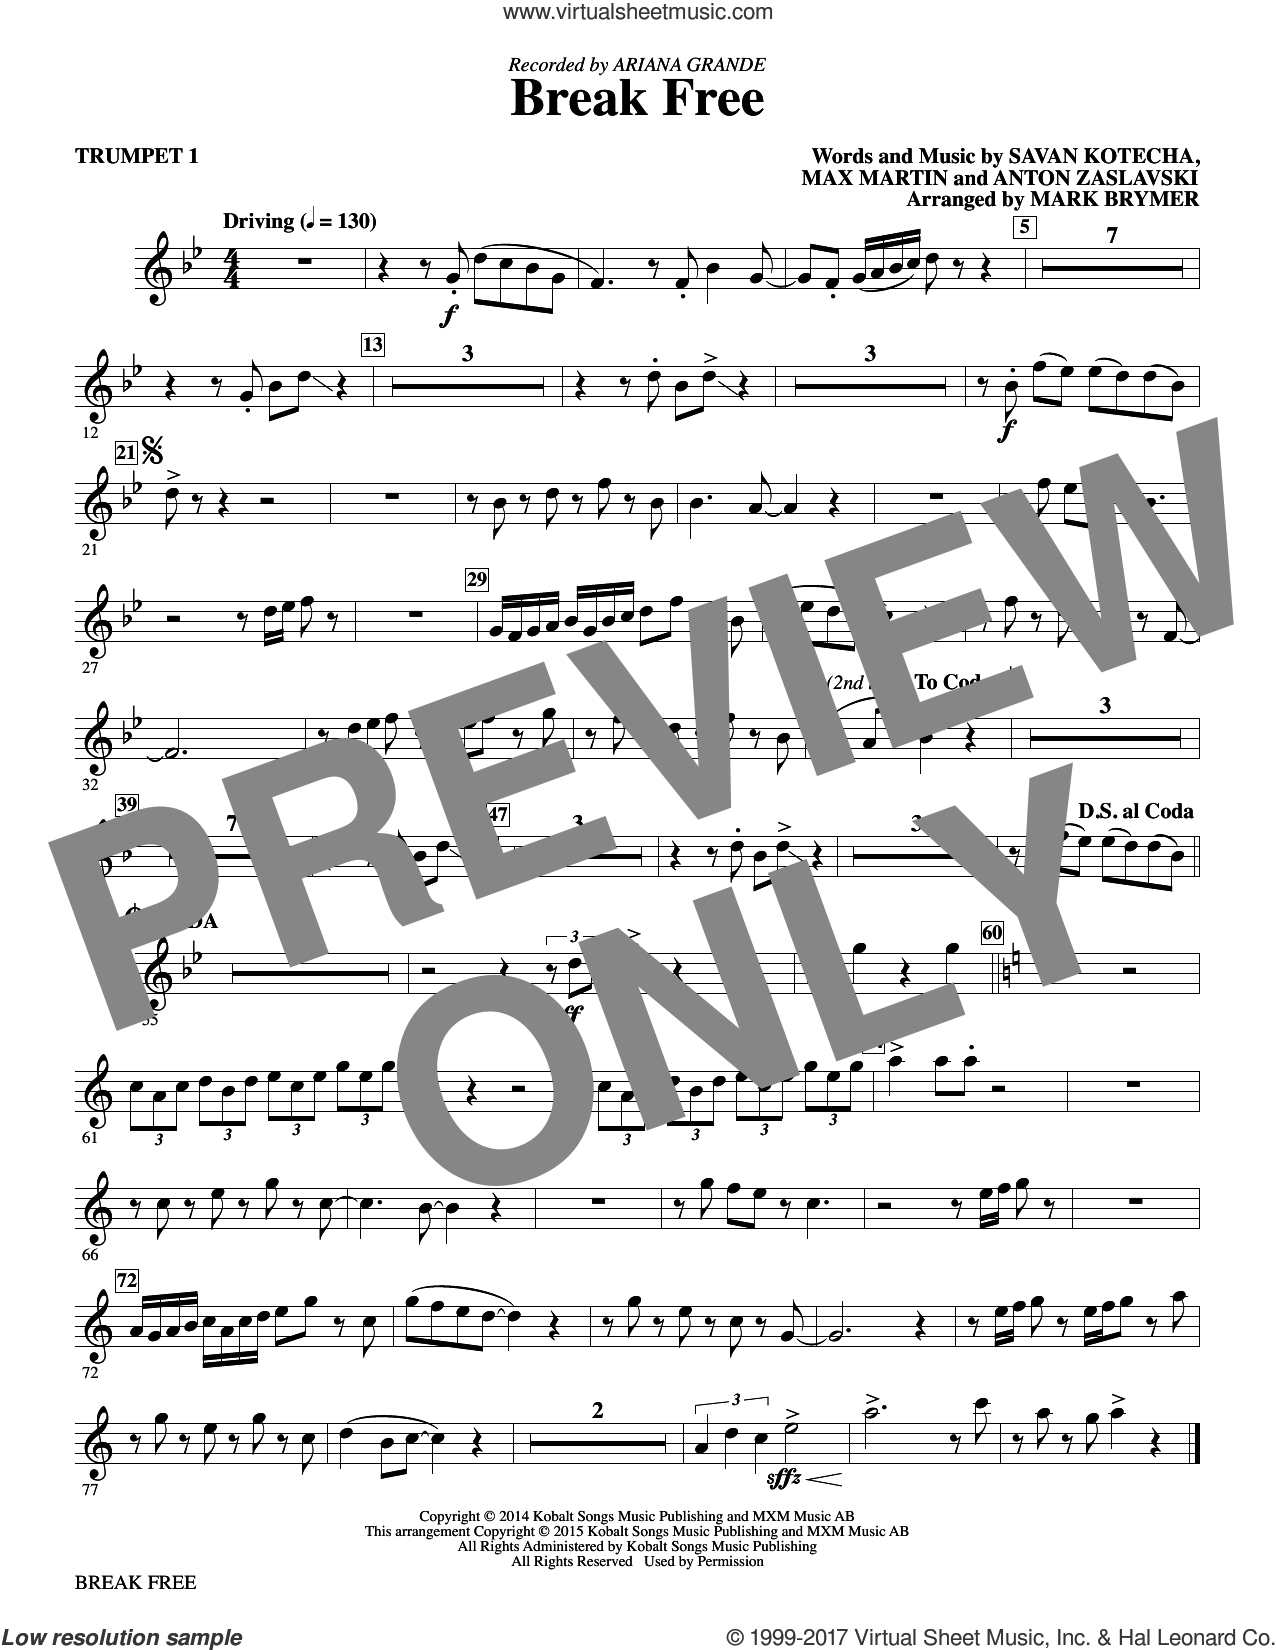 Break Free (complete set of parts) sheet music for orchestra/band by Mark Brymer, Anton Zaslavski, Ariana Grande, Ariana Grande feat. Zedd, Max Martin and Savan Kotecha, intermediate skill level